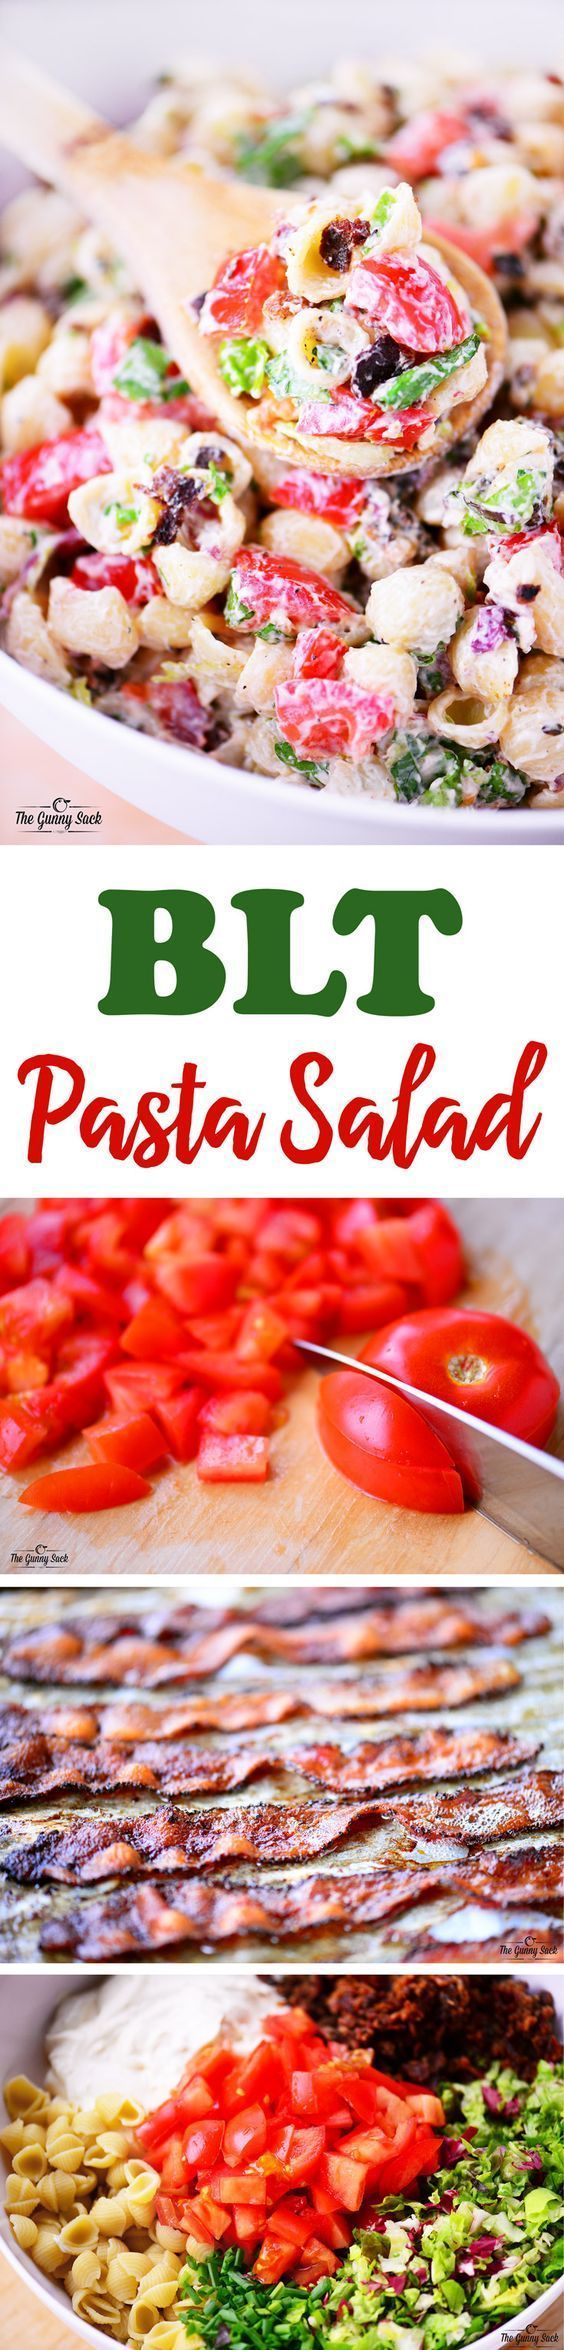 This BLT Pasta Salad features creamy dressing, crunchy bacon, crisp lettuce and fresh tomatoes! It's a popular summer salad recipe for a backyard cookout! (via partnership with #BushelBoyTomatoes)